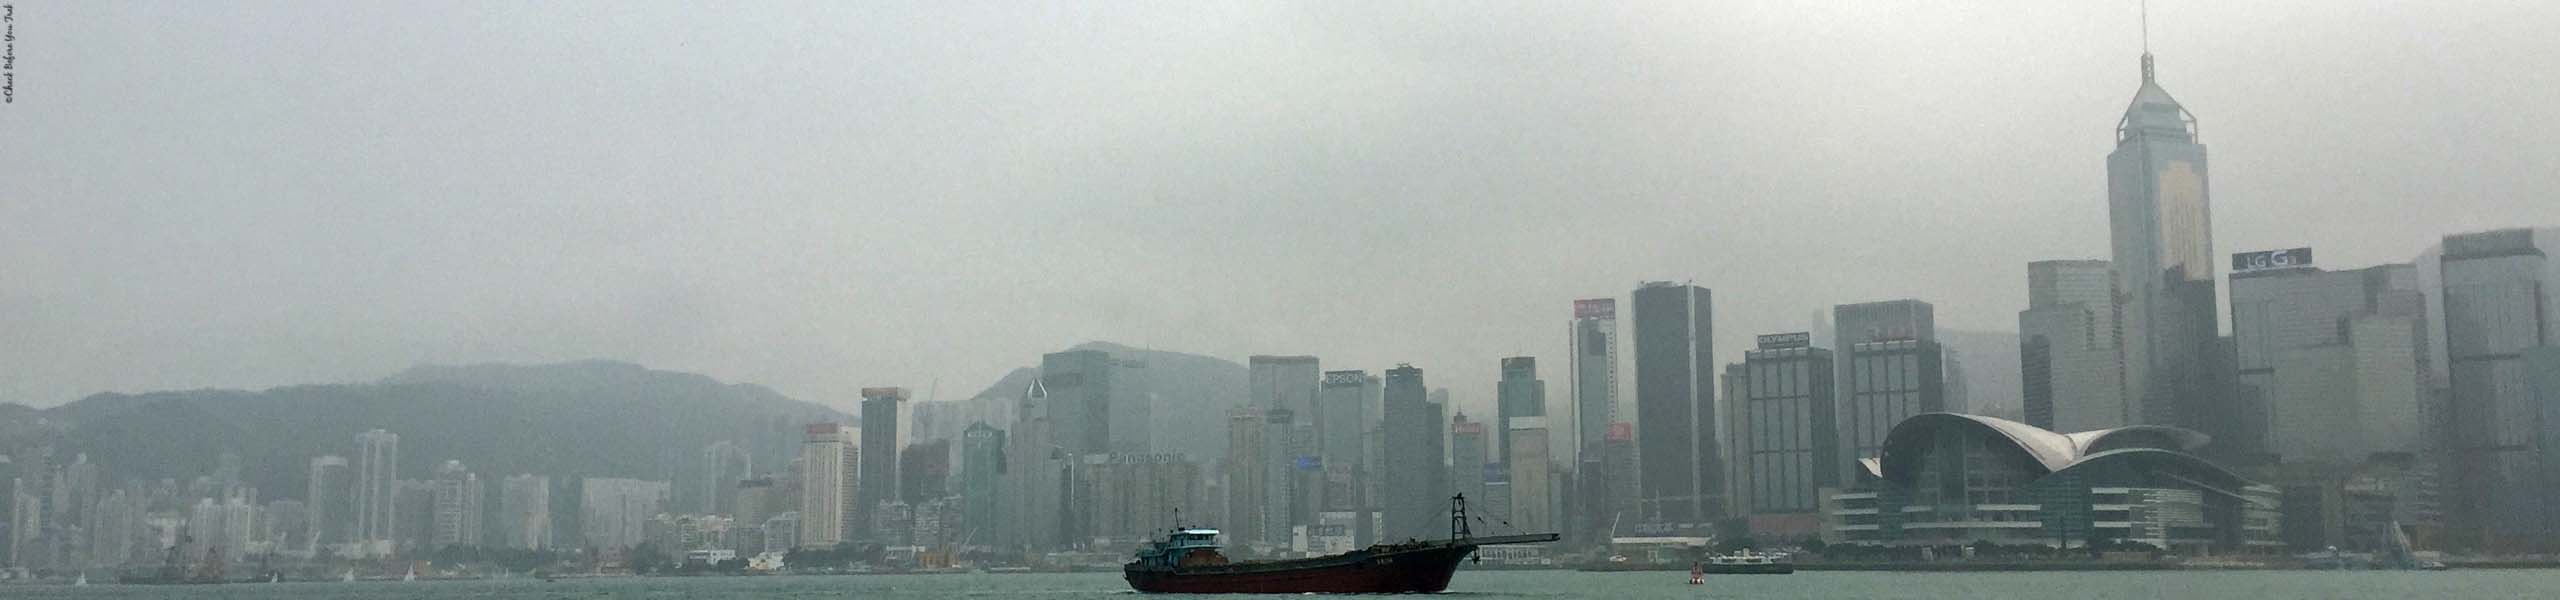 Featured Photo, Victoria Harbour - Hong Kong Island, Hong Kong, China